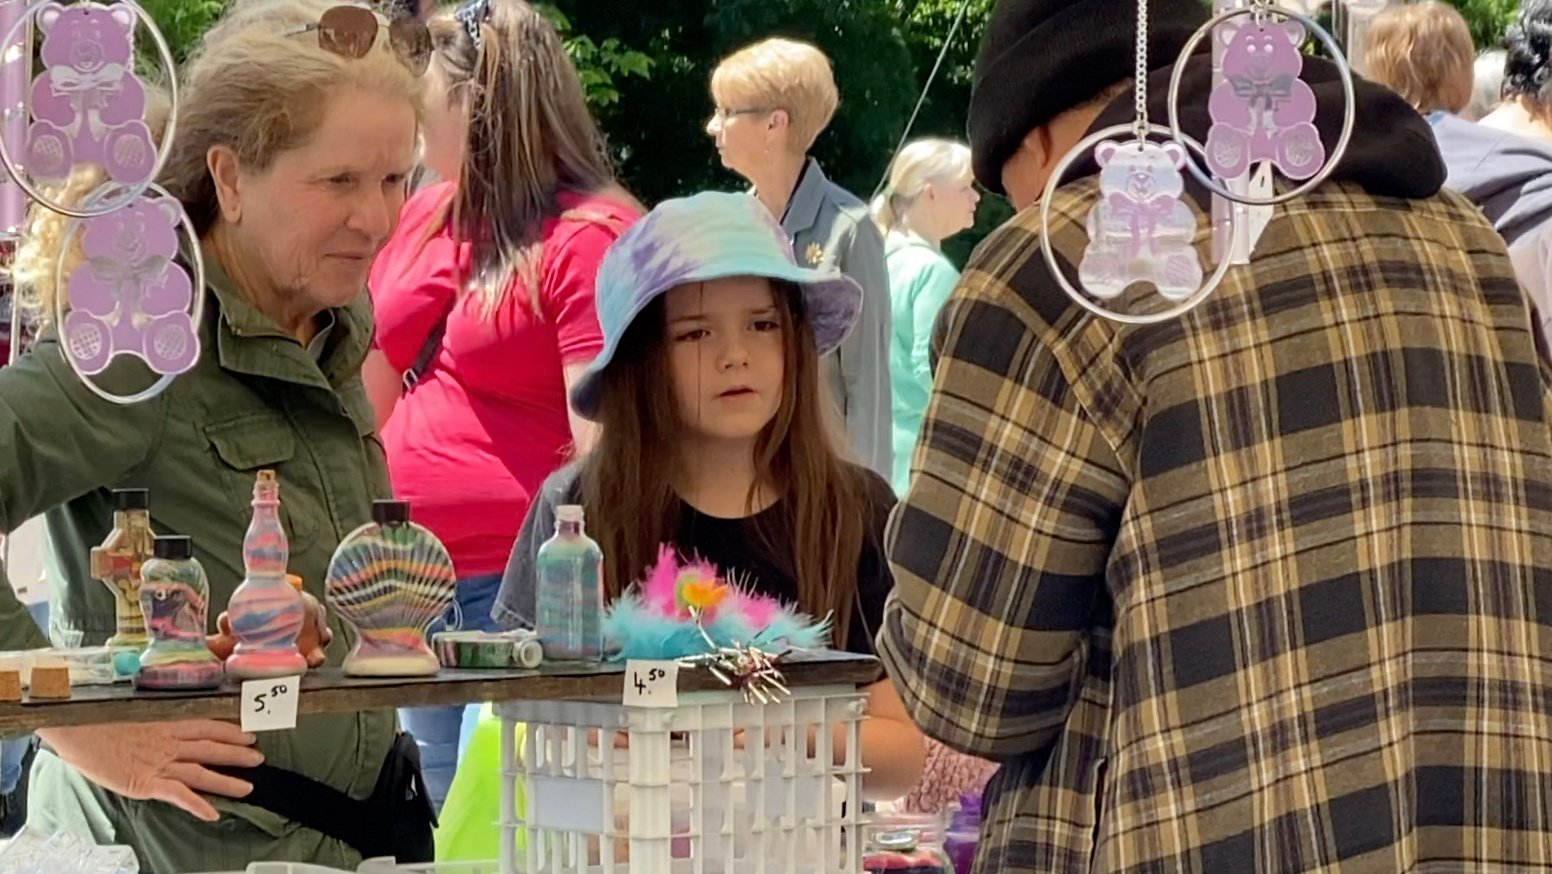 Historical Society on mission at Brownville Flea Market